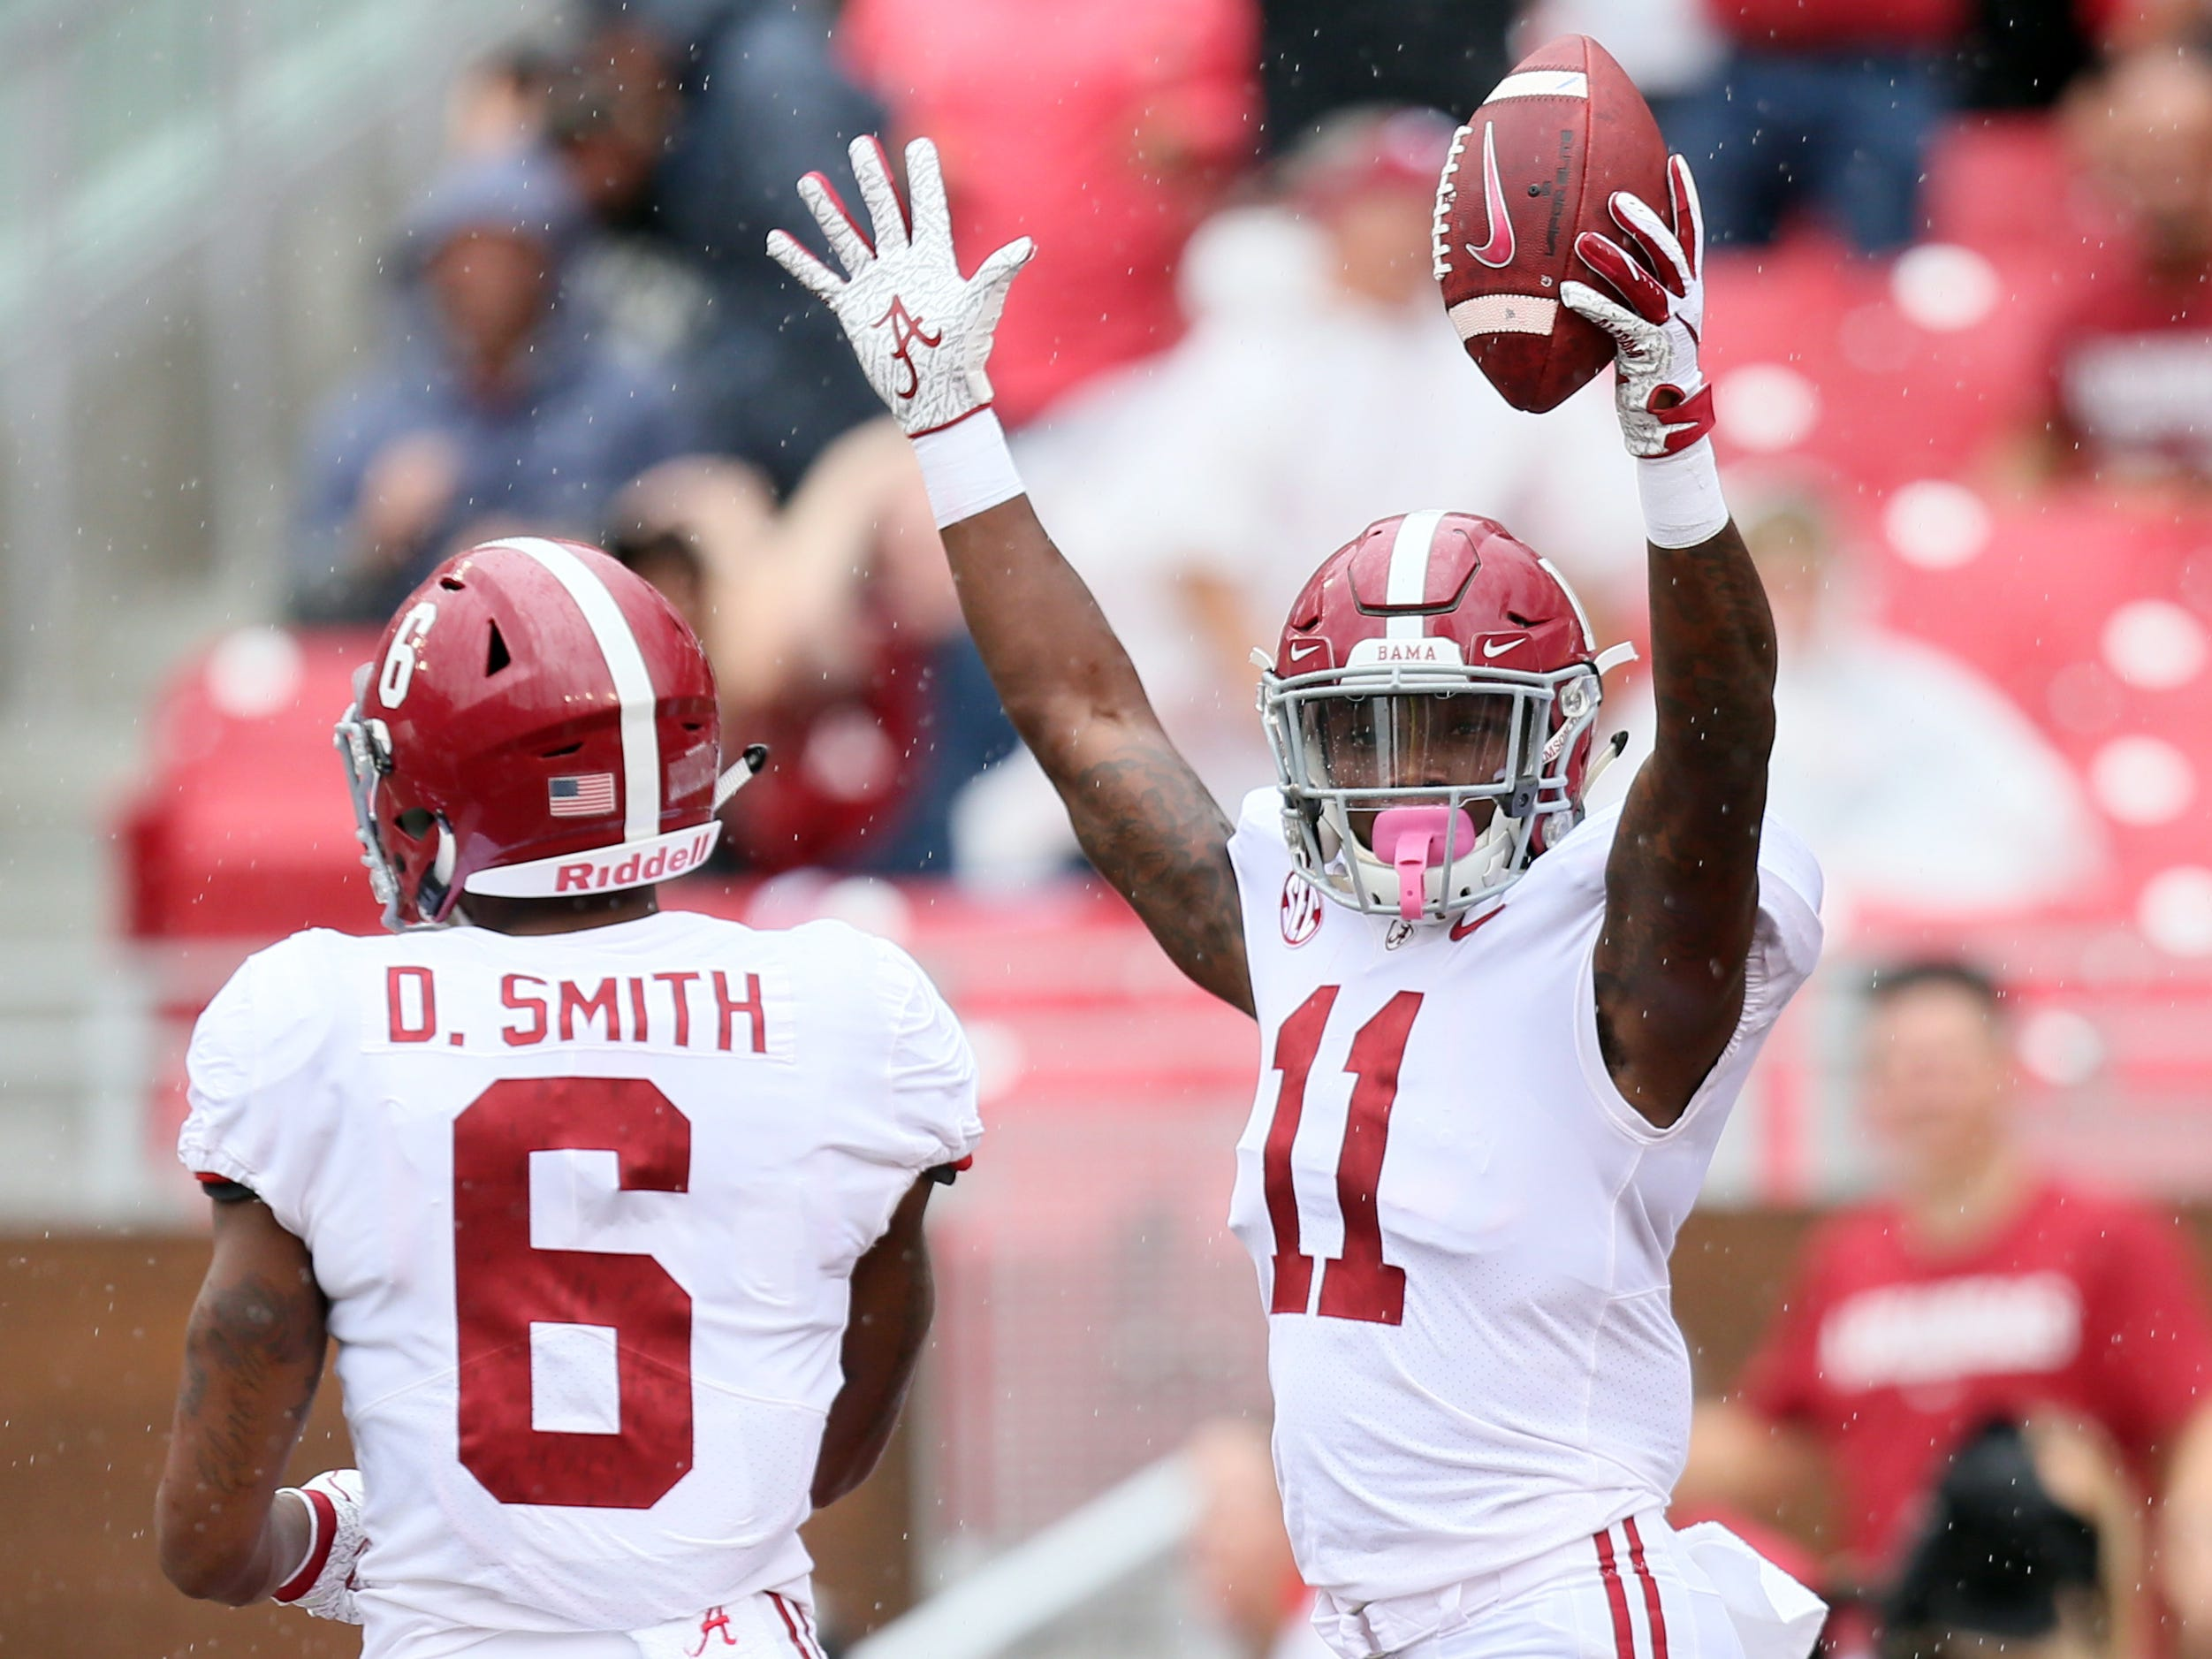 Alabama Crimson Tide wide receiver Henry Ruggs III celebrates after recovering a fumble and scoring a touchdown in the first quarter against the Arkansas Razorbacks at Donald W. Reynolds Razorback Stadium.